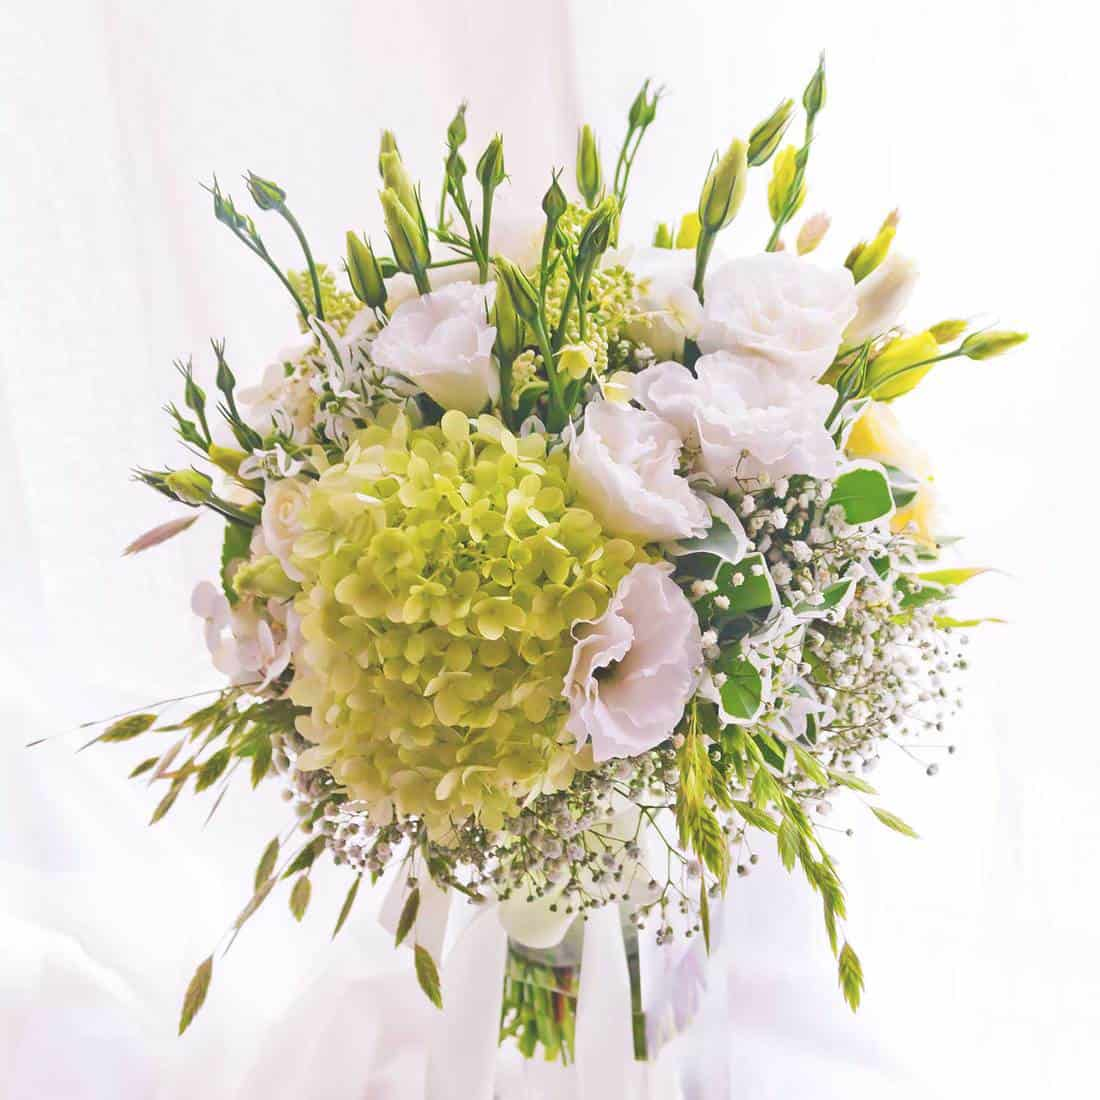 Beautiful summer bouquet of white hydrangeas and roses